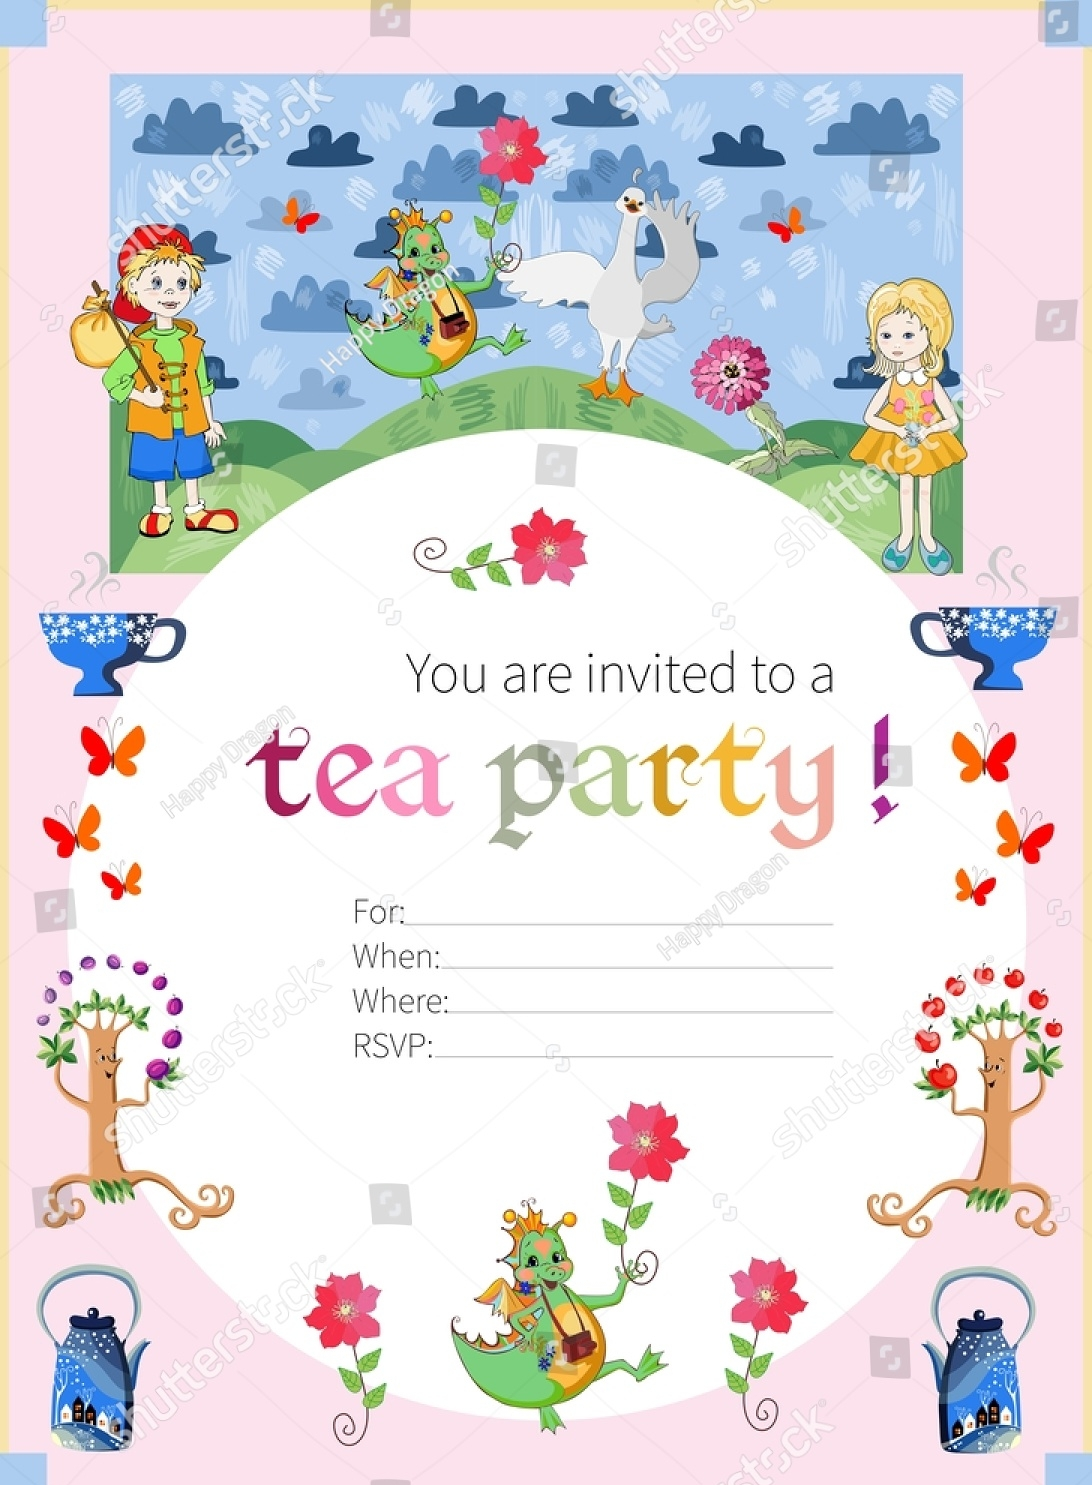 tea party invitation for kids